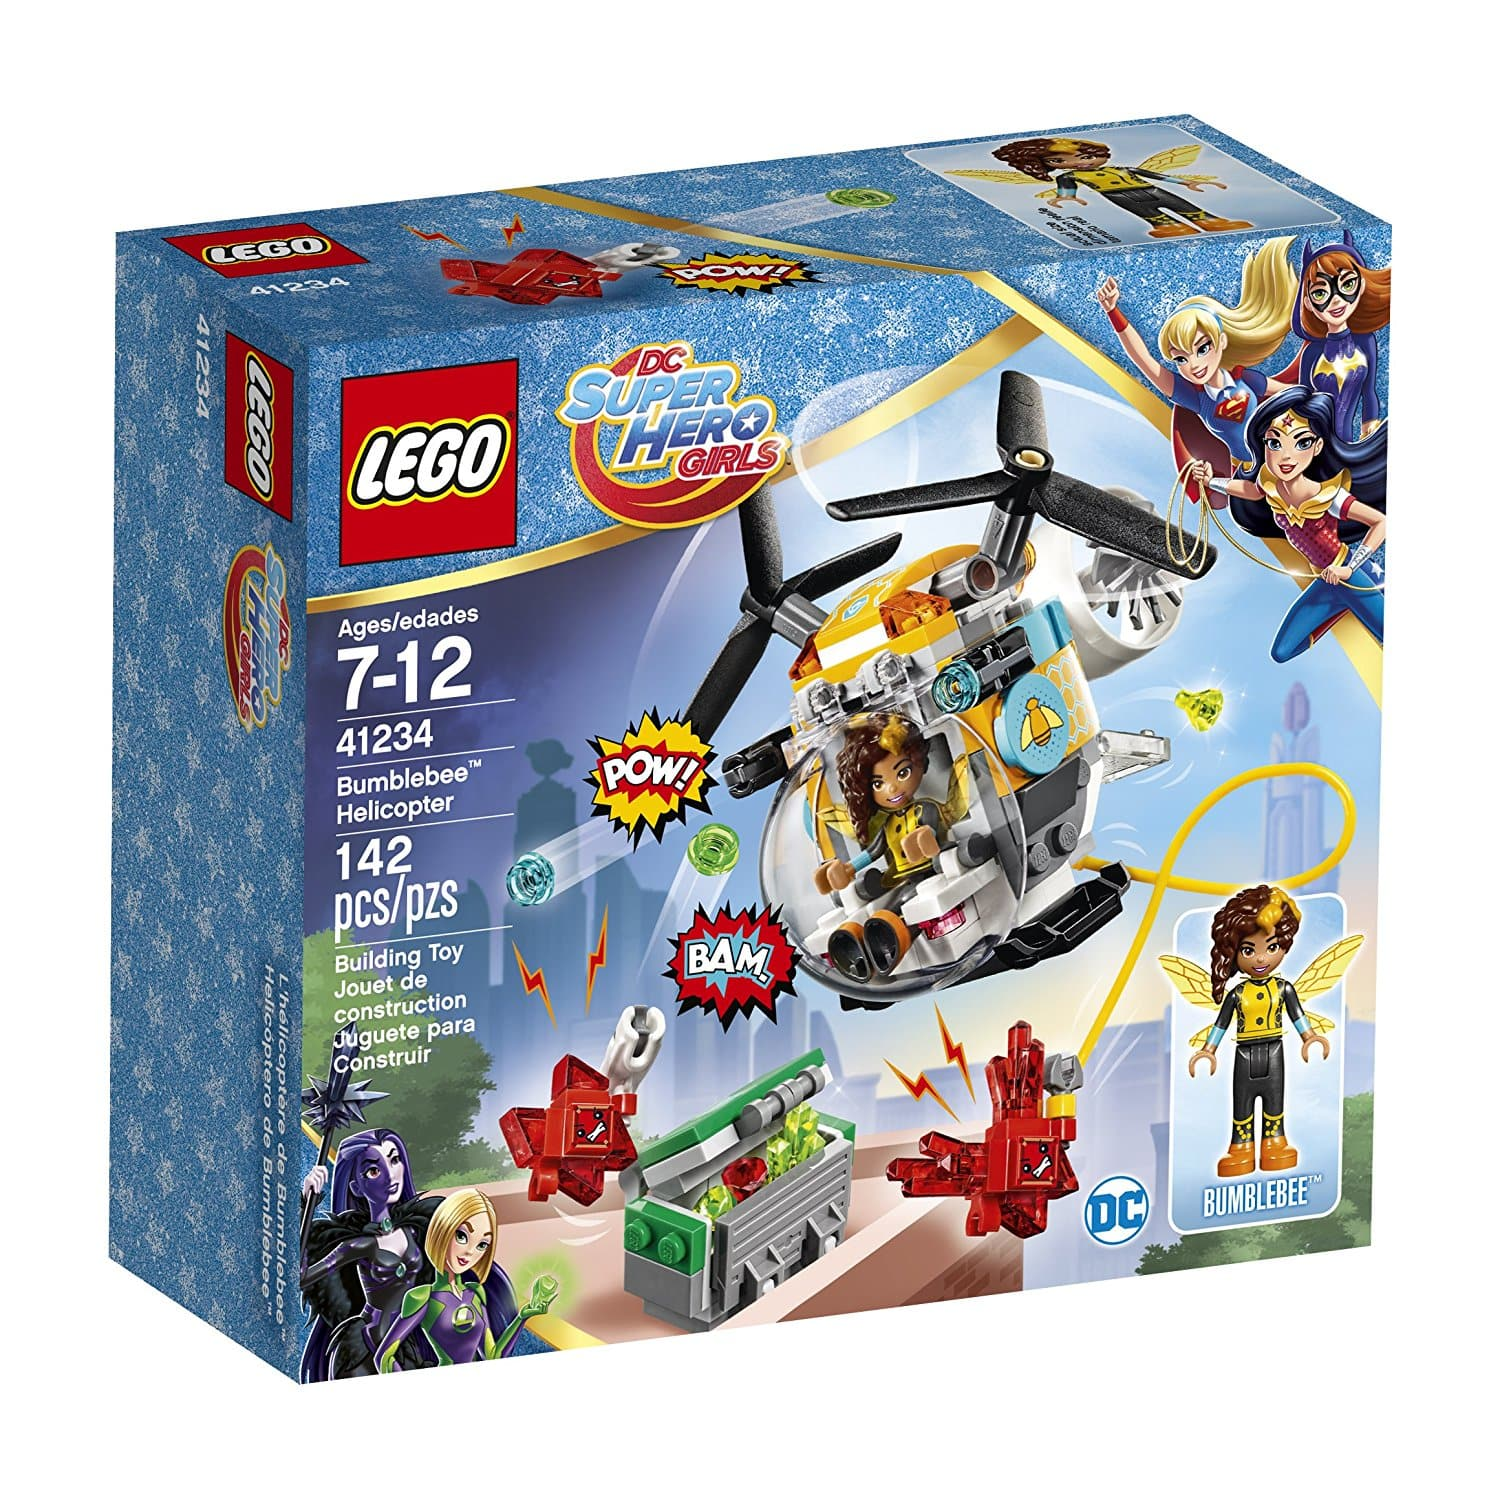 לגו 41234 Lego - הליקופטר freeshipping - TheBrick.co.il